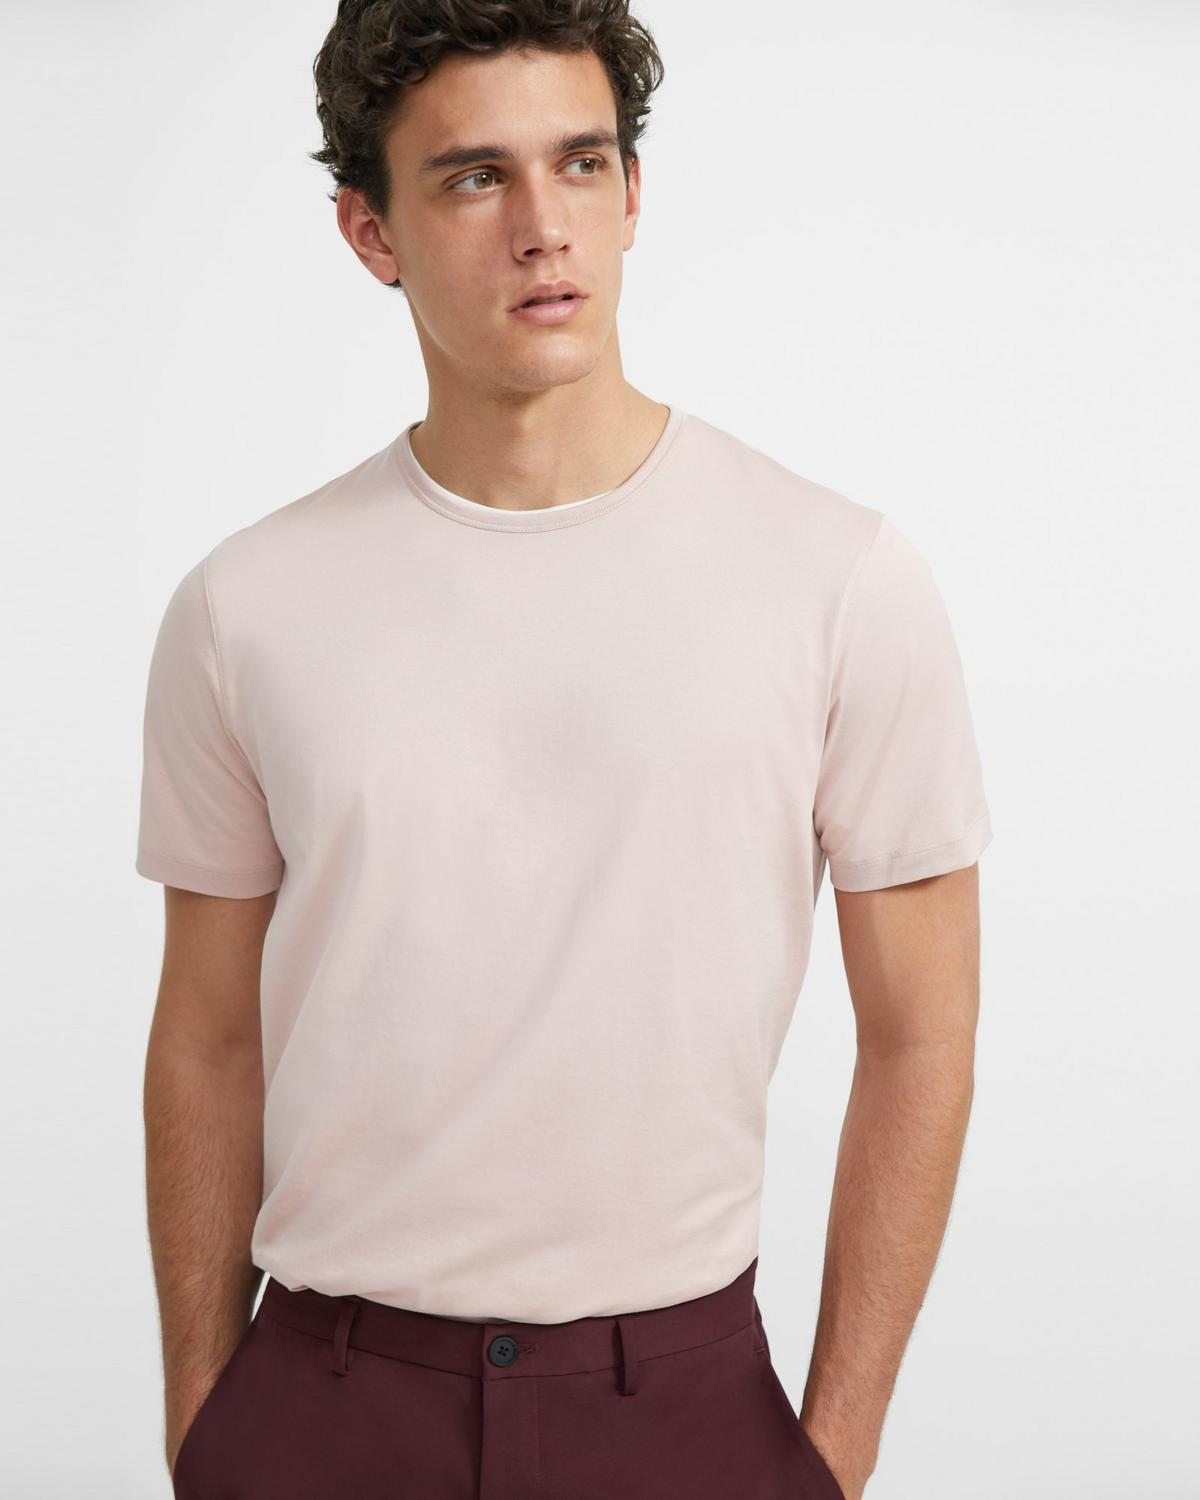 Luxe Cotton Tee